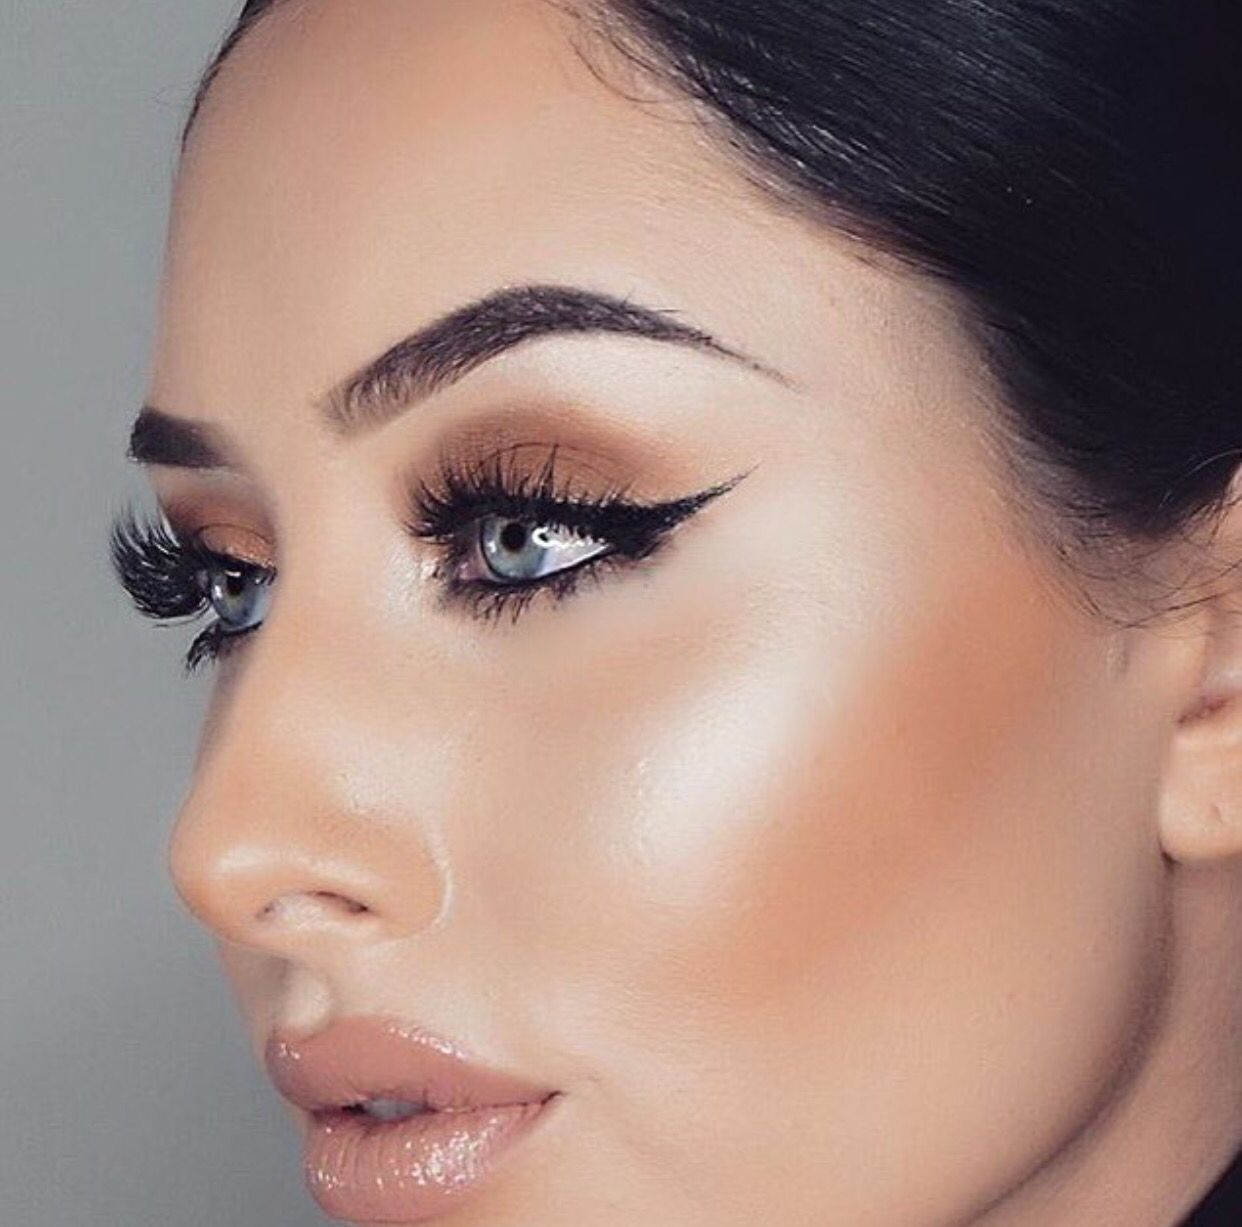 Pin By Gianna Eden On Glamour Shots Makeup Chic Makeup Beauty Eyebrow